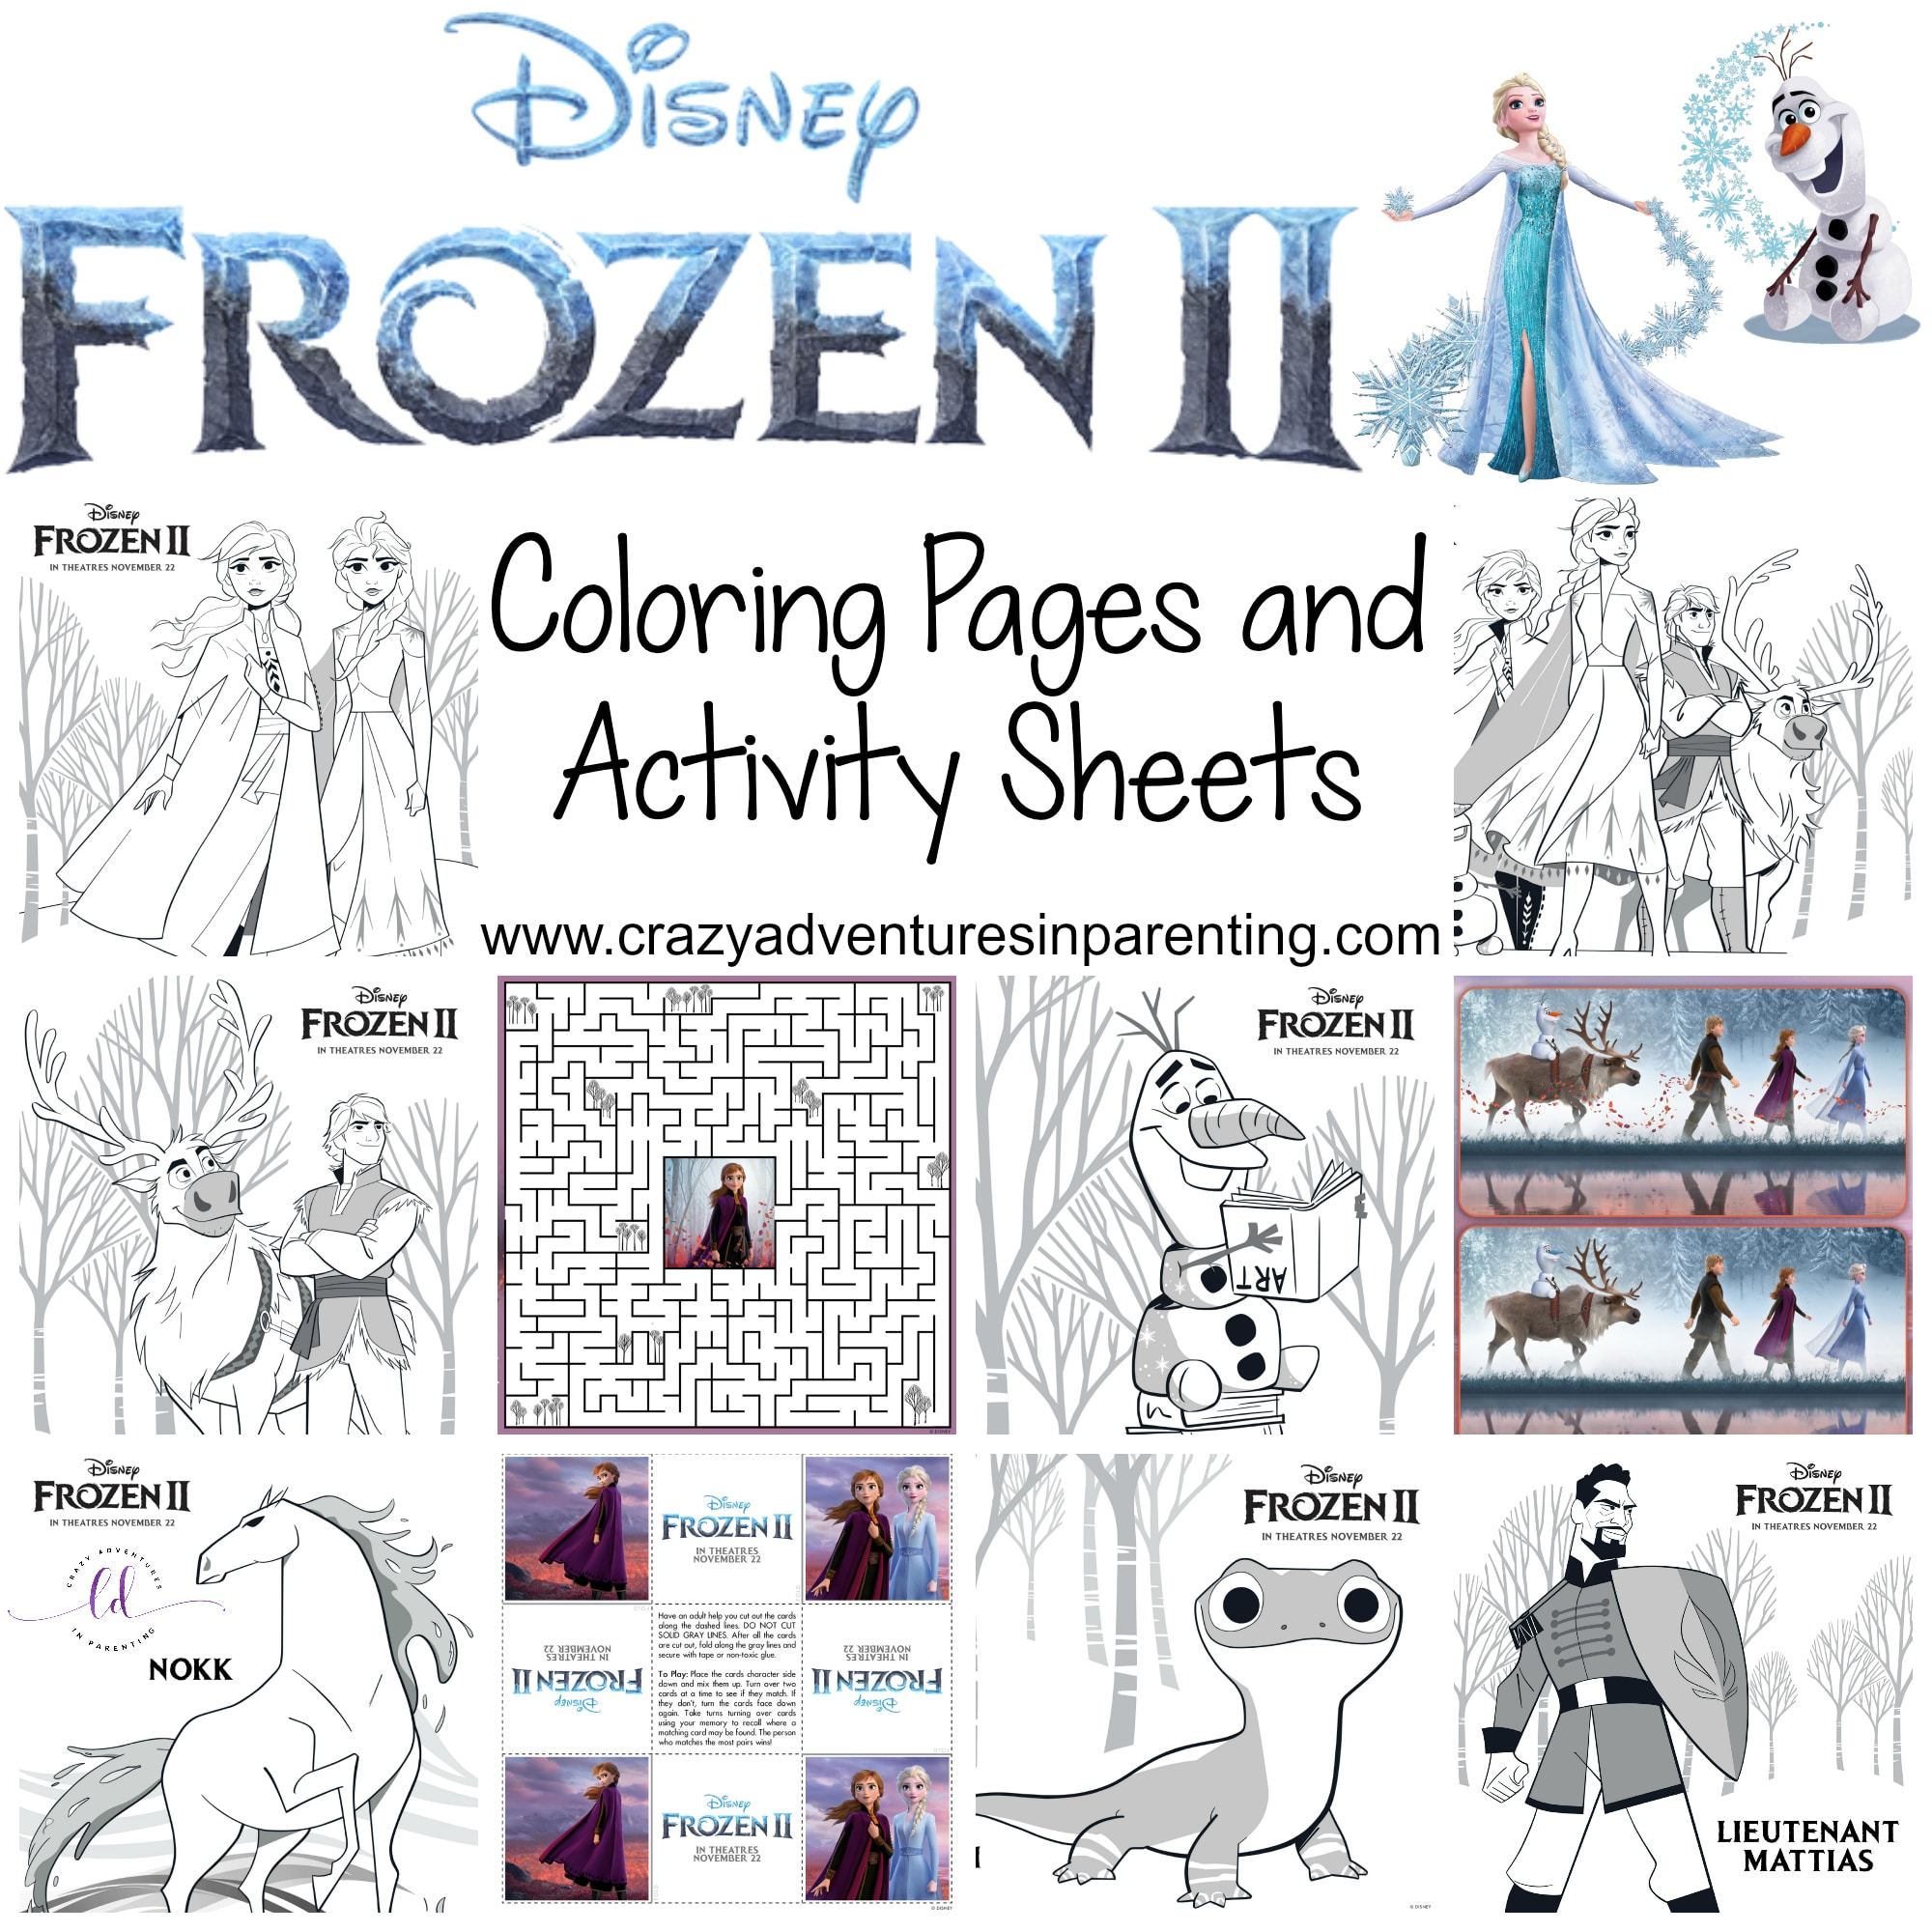 Free Printable Frozen 2 Coloring Pages And Activity Sheets Crazy Adventures In Parenting